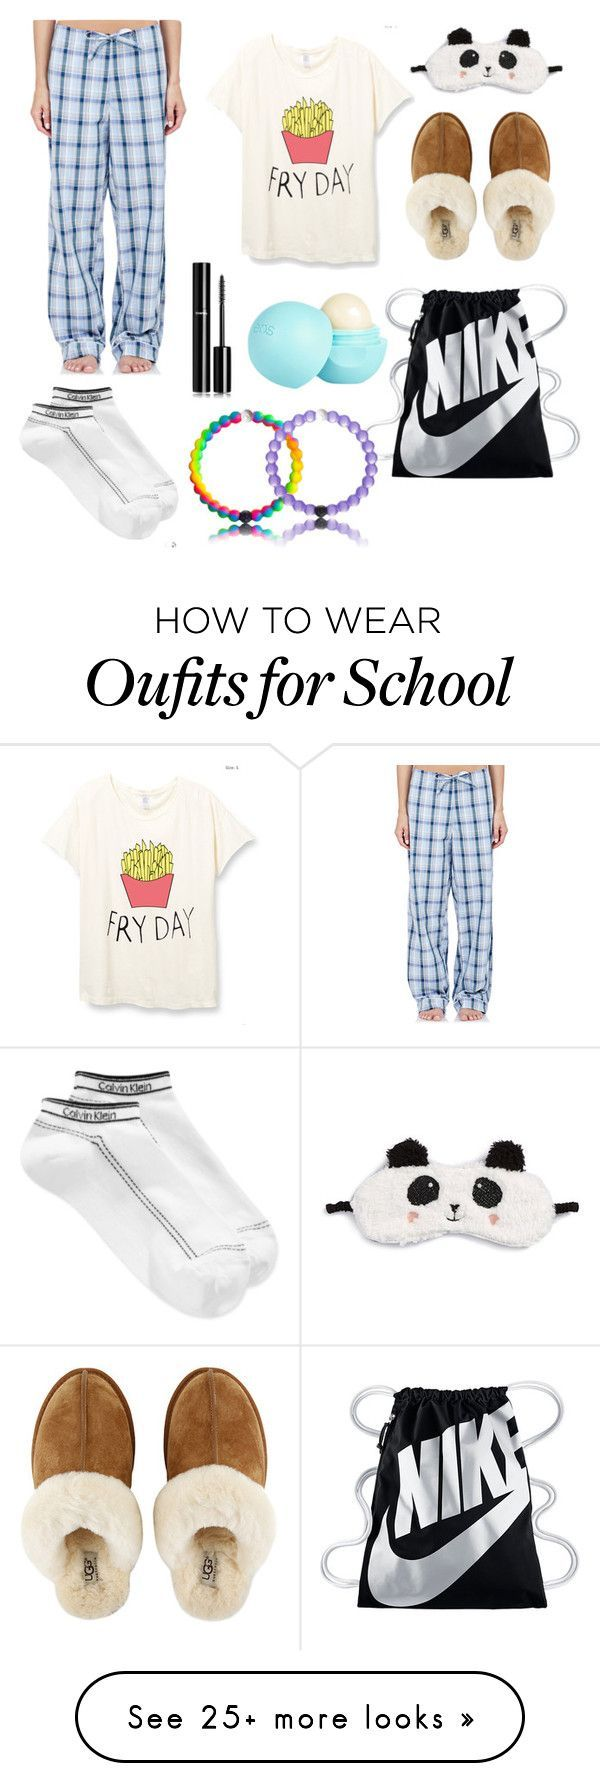 Its PJ day at school!! by simplymollyrose on Polyvore featuring Steven Alan, UGG Australia, P.J. Salvage, Chanel, River Island, NIKE and Calvin Klein